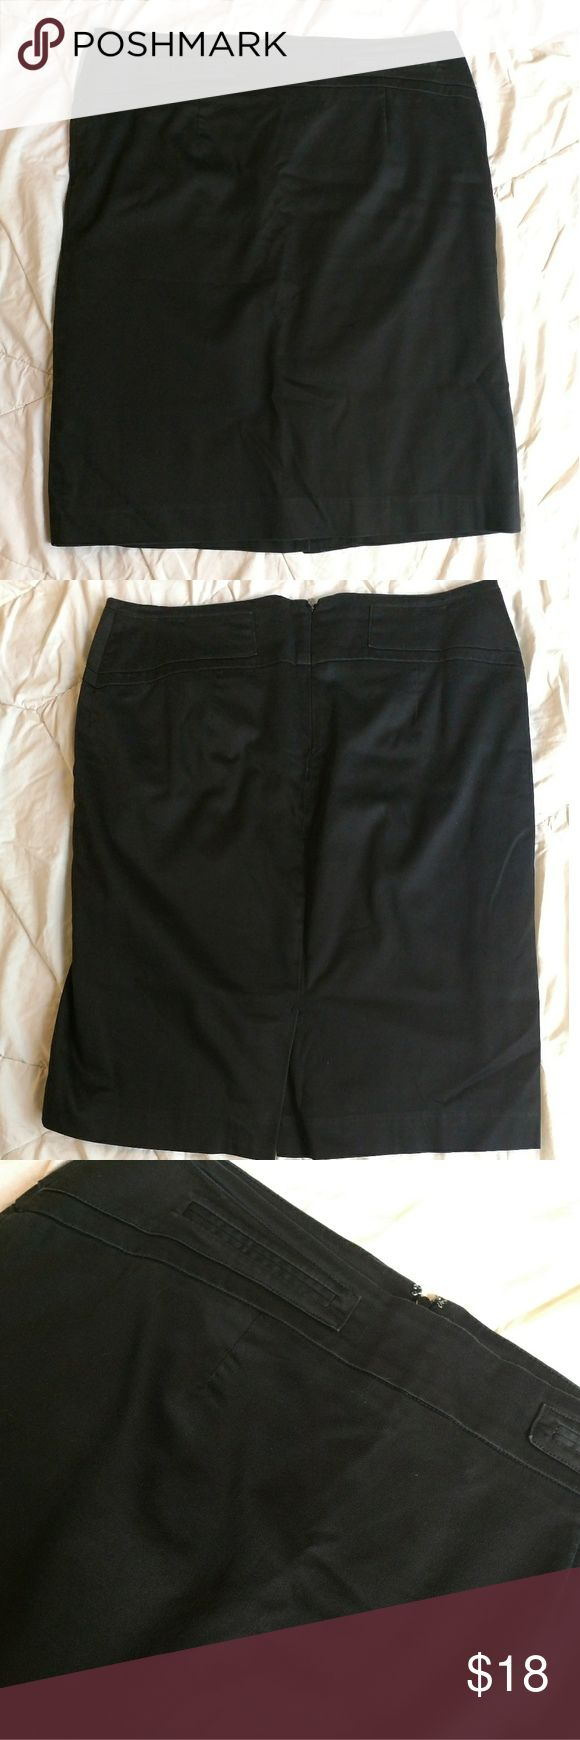 """Atelier Luxe Boutique black pencil skirt Atelier Luxe boutique black pencil skirt with mini slit on back size 10. Gently used with no flaws.  Flat Lay Waist: 16.5"""" Length: 21.5"""" Atelier Luxe Skirts Pencil"""